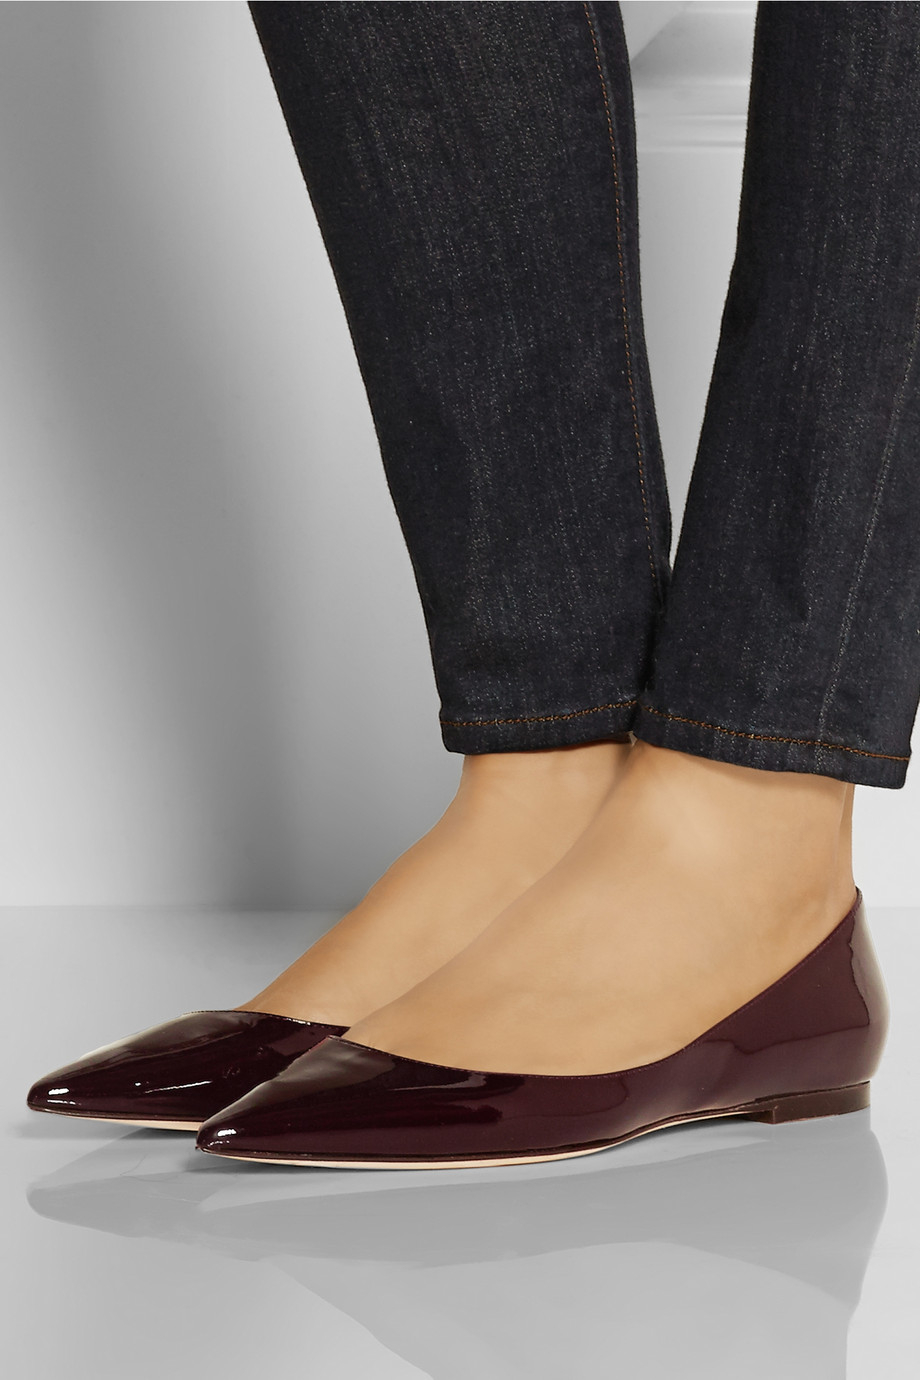 outlet supply Jimmy Choo Suede Pointed-Toe Flats cheap affordable discount footaction cheapest price cheap online 54ptXh5